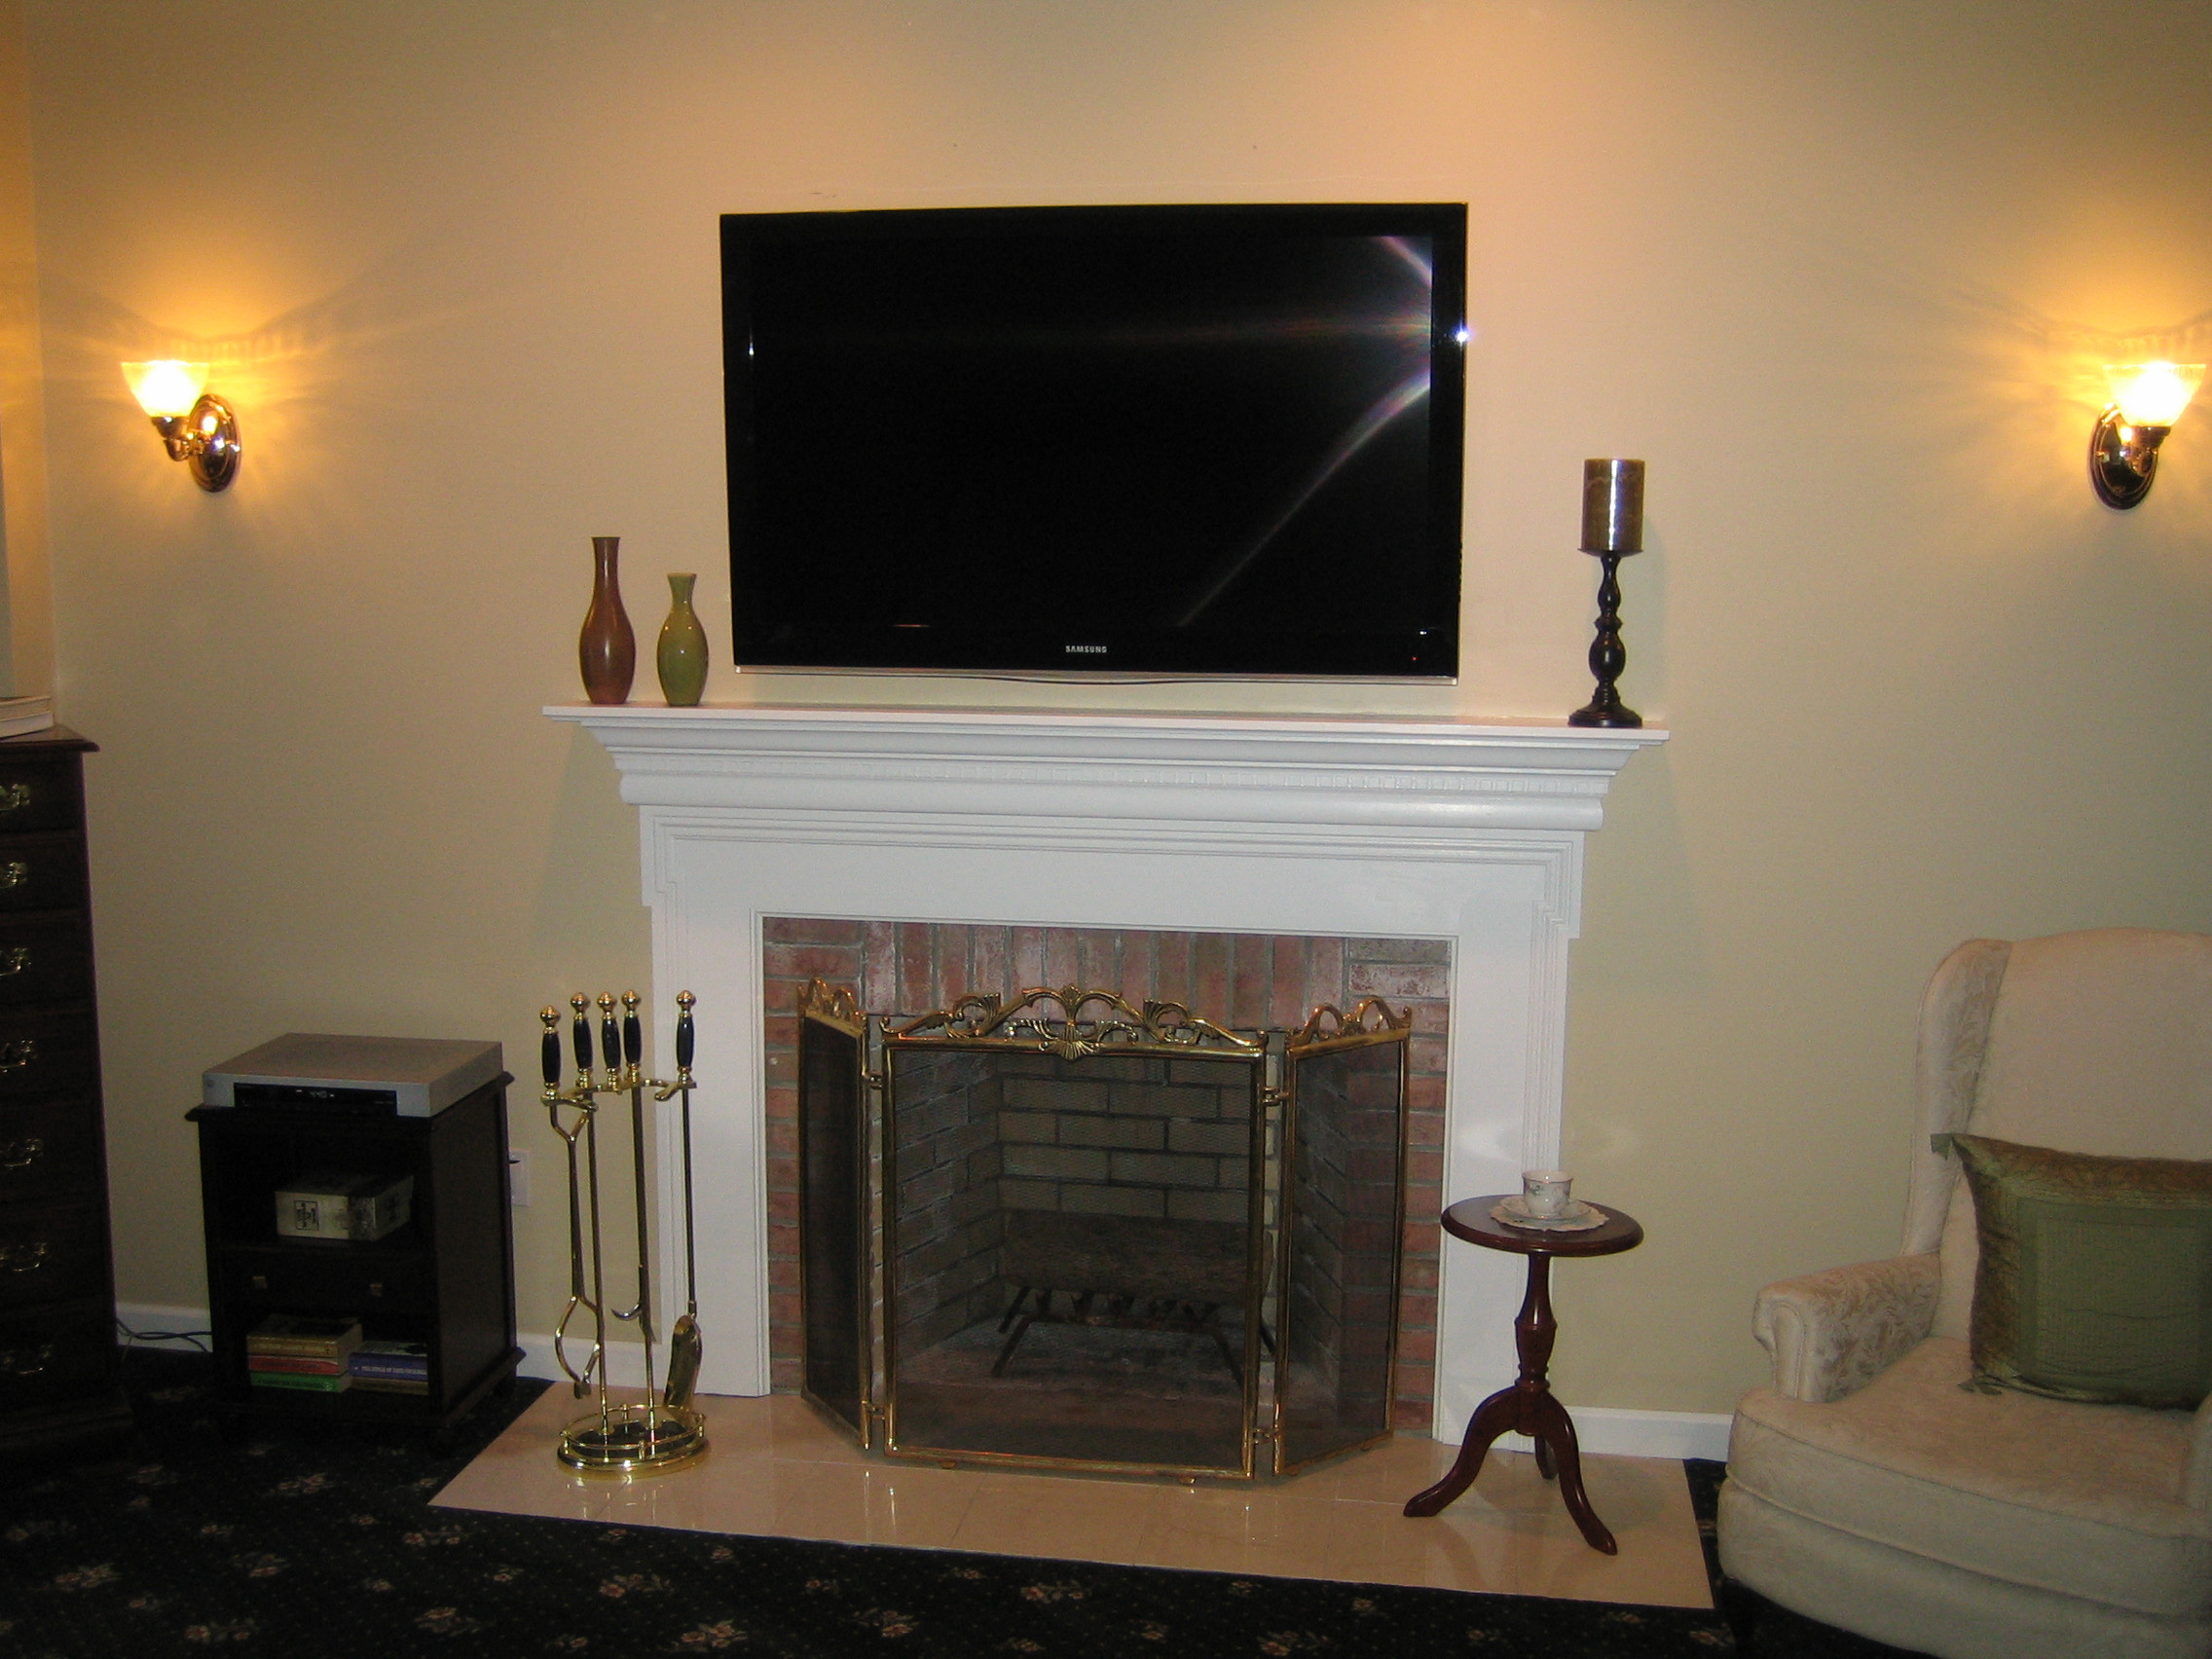 Best ideas about Mounting Tv Above Fireplace . Save or Pin Clinton CT mount tv above fireplace Now.